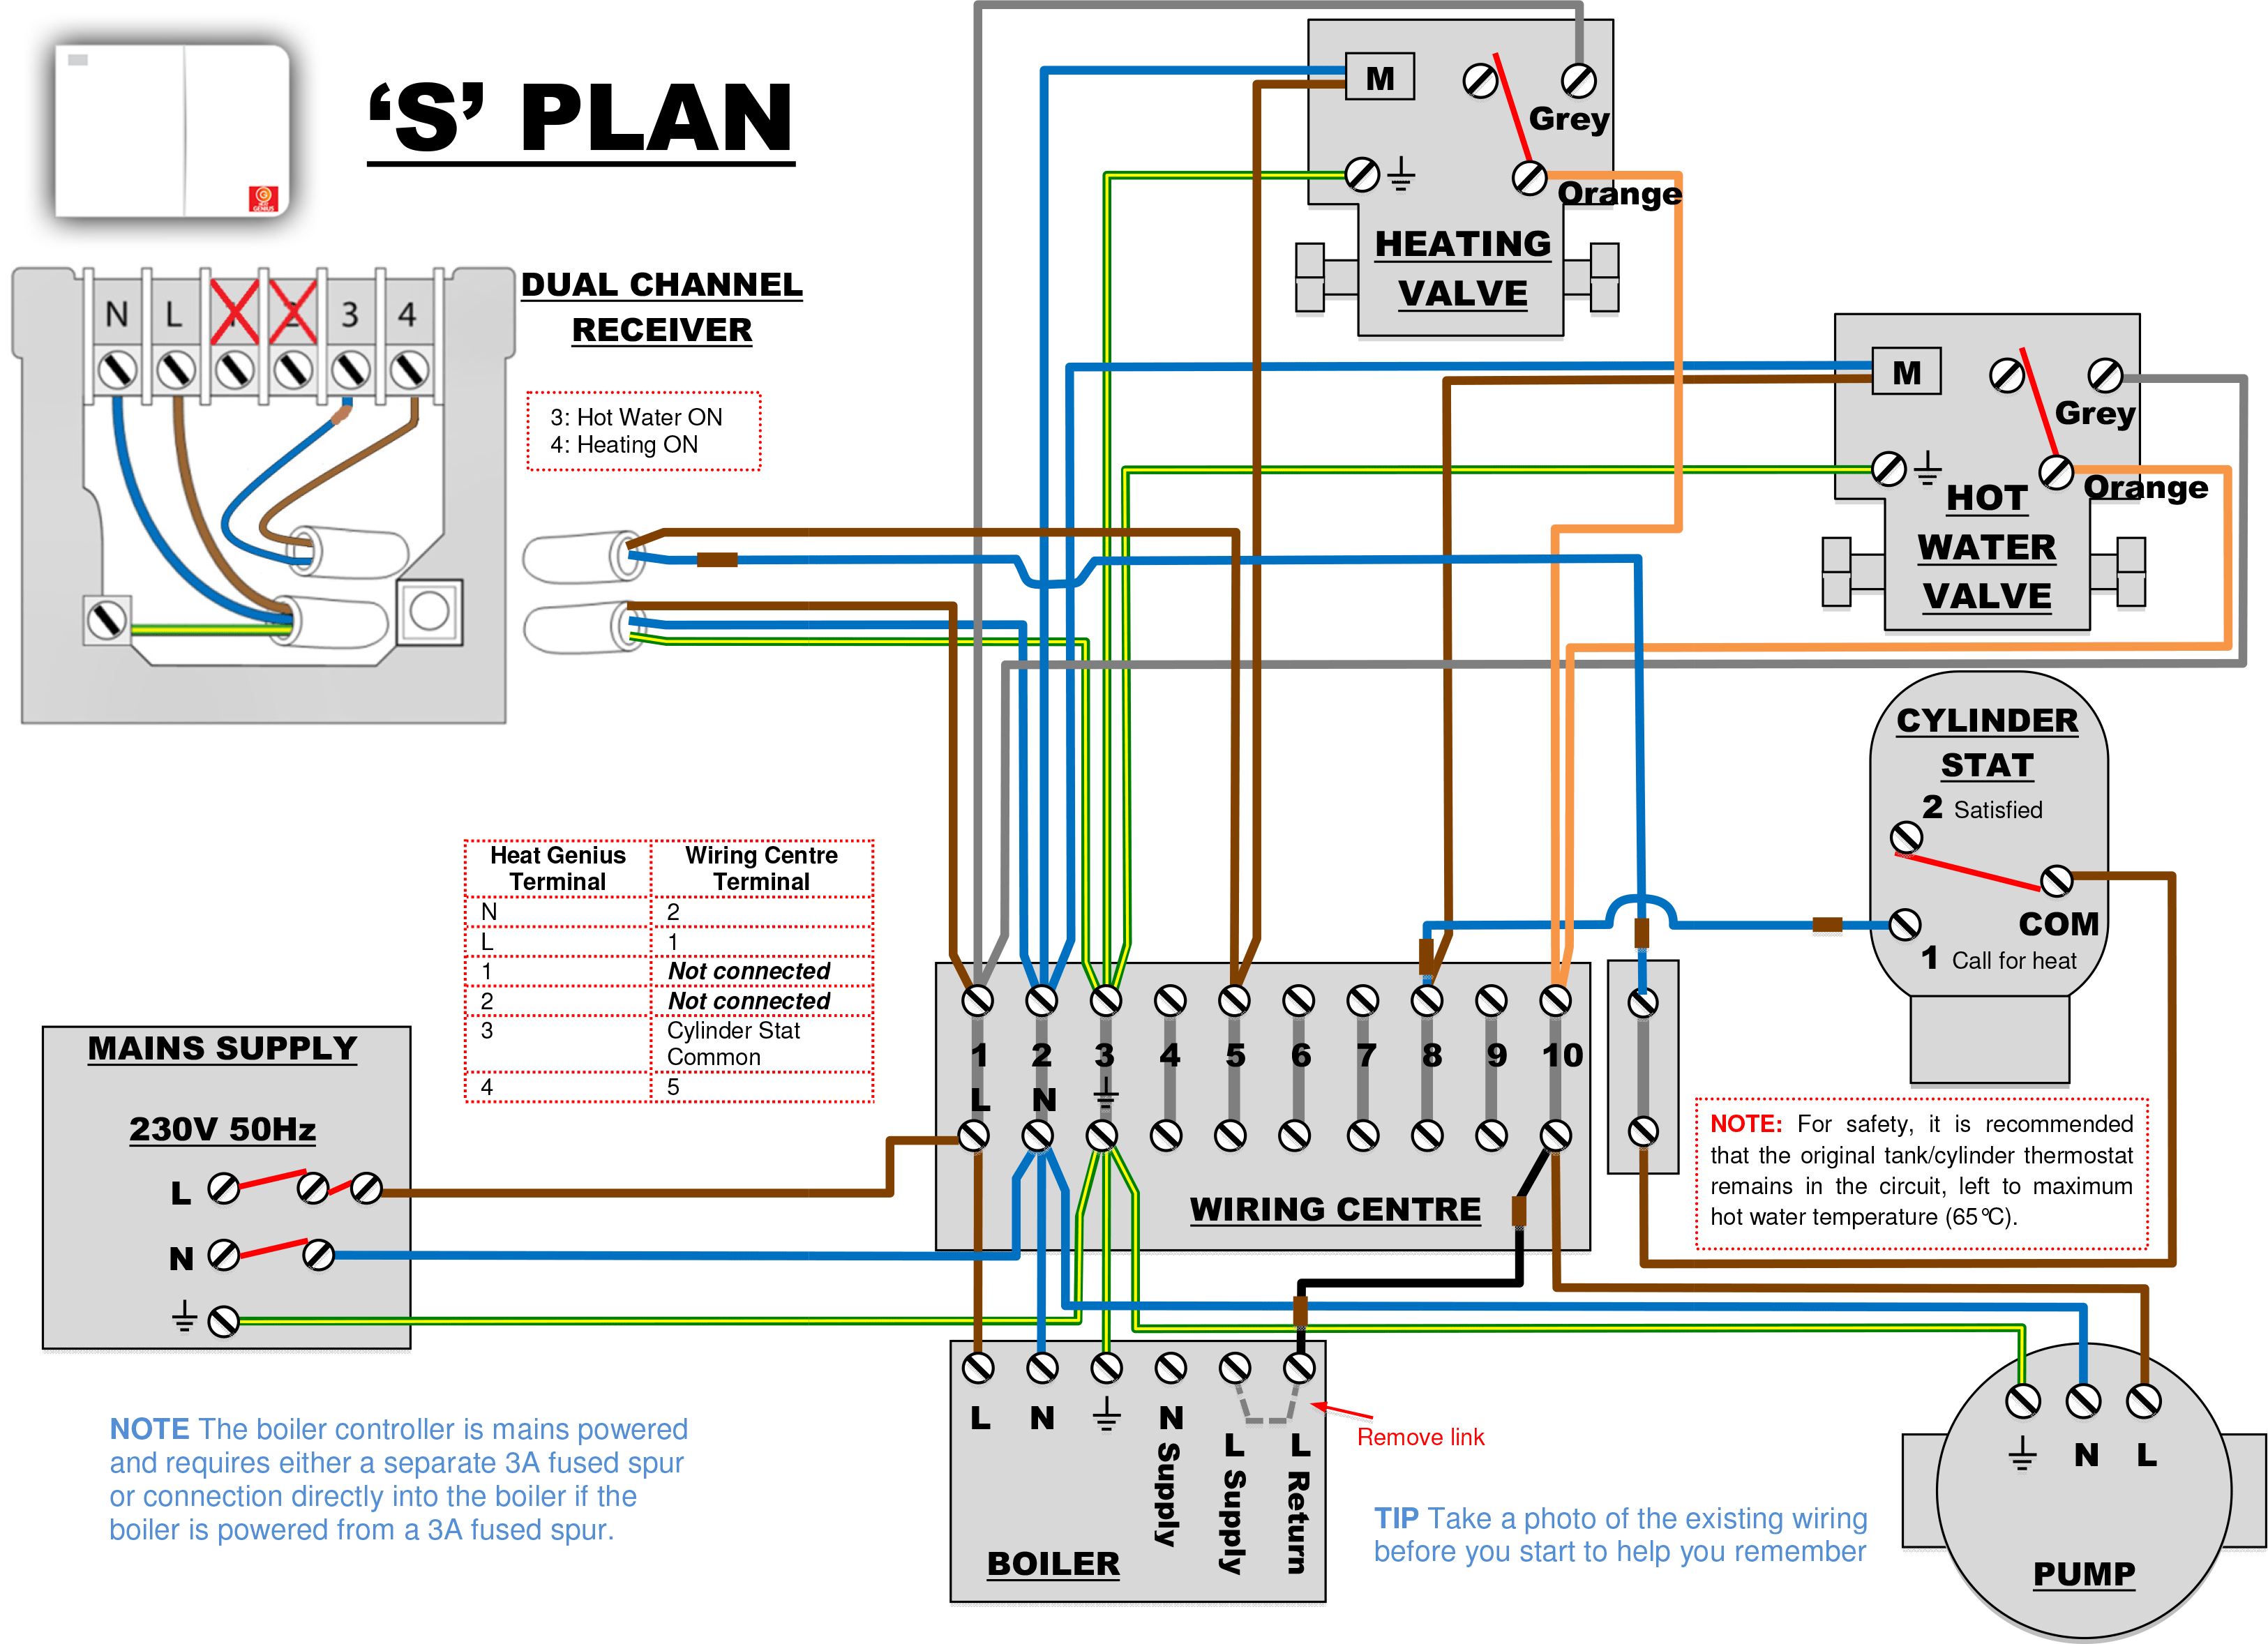 Siemens G120 Wiring Diagram On Images Free Download Inside With Micromaster 440 Central Heating System Thermostat Wiring Heating Thermostat